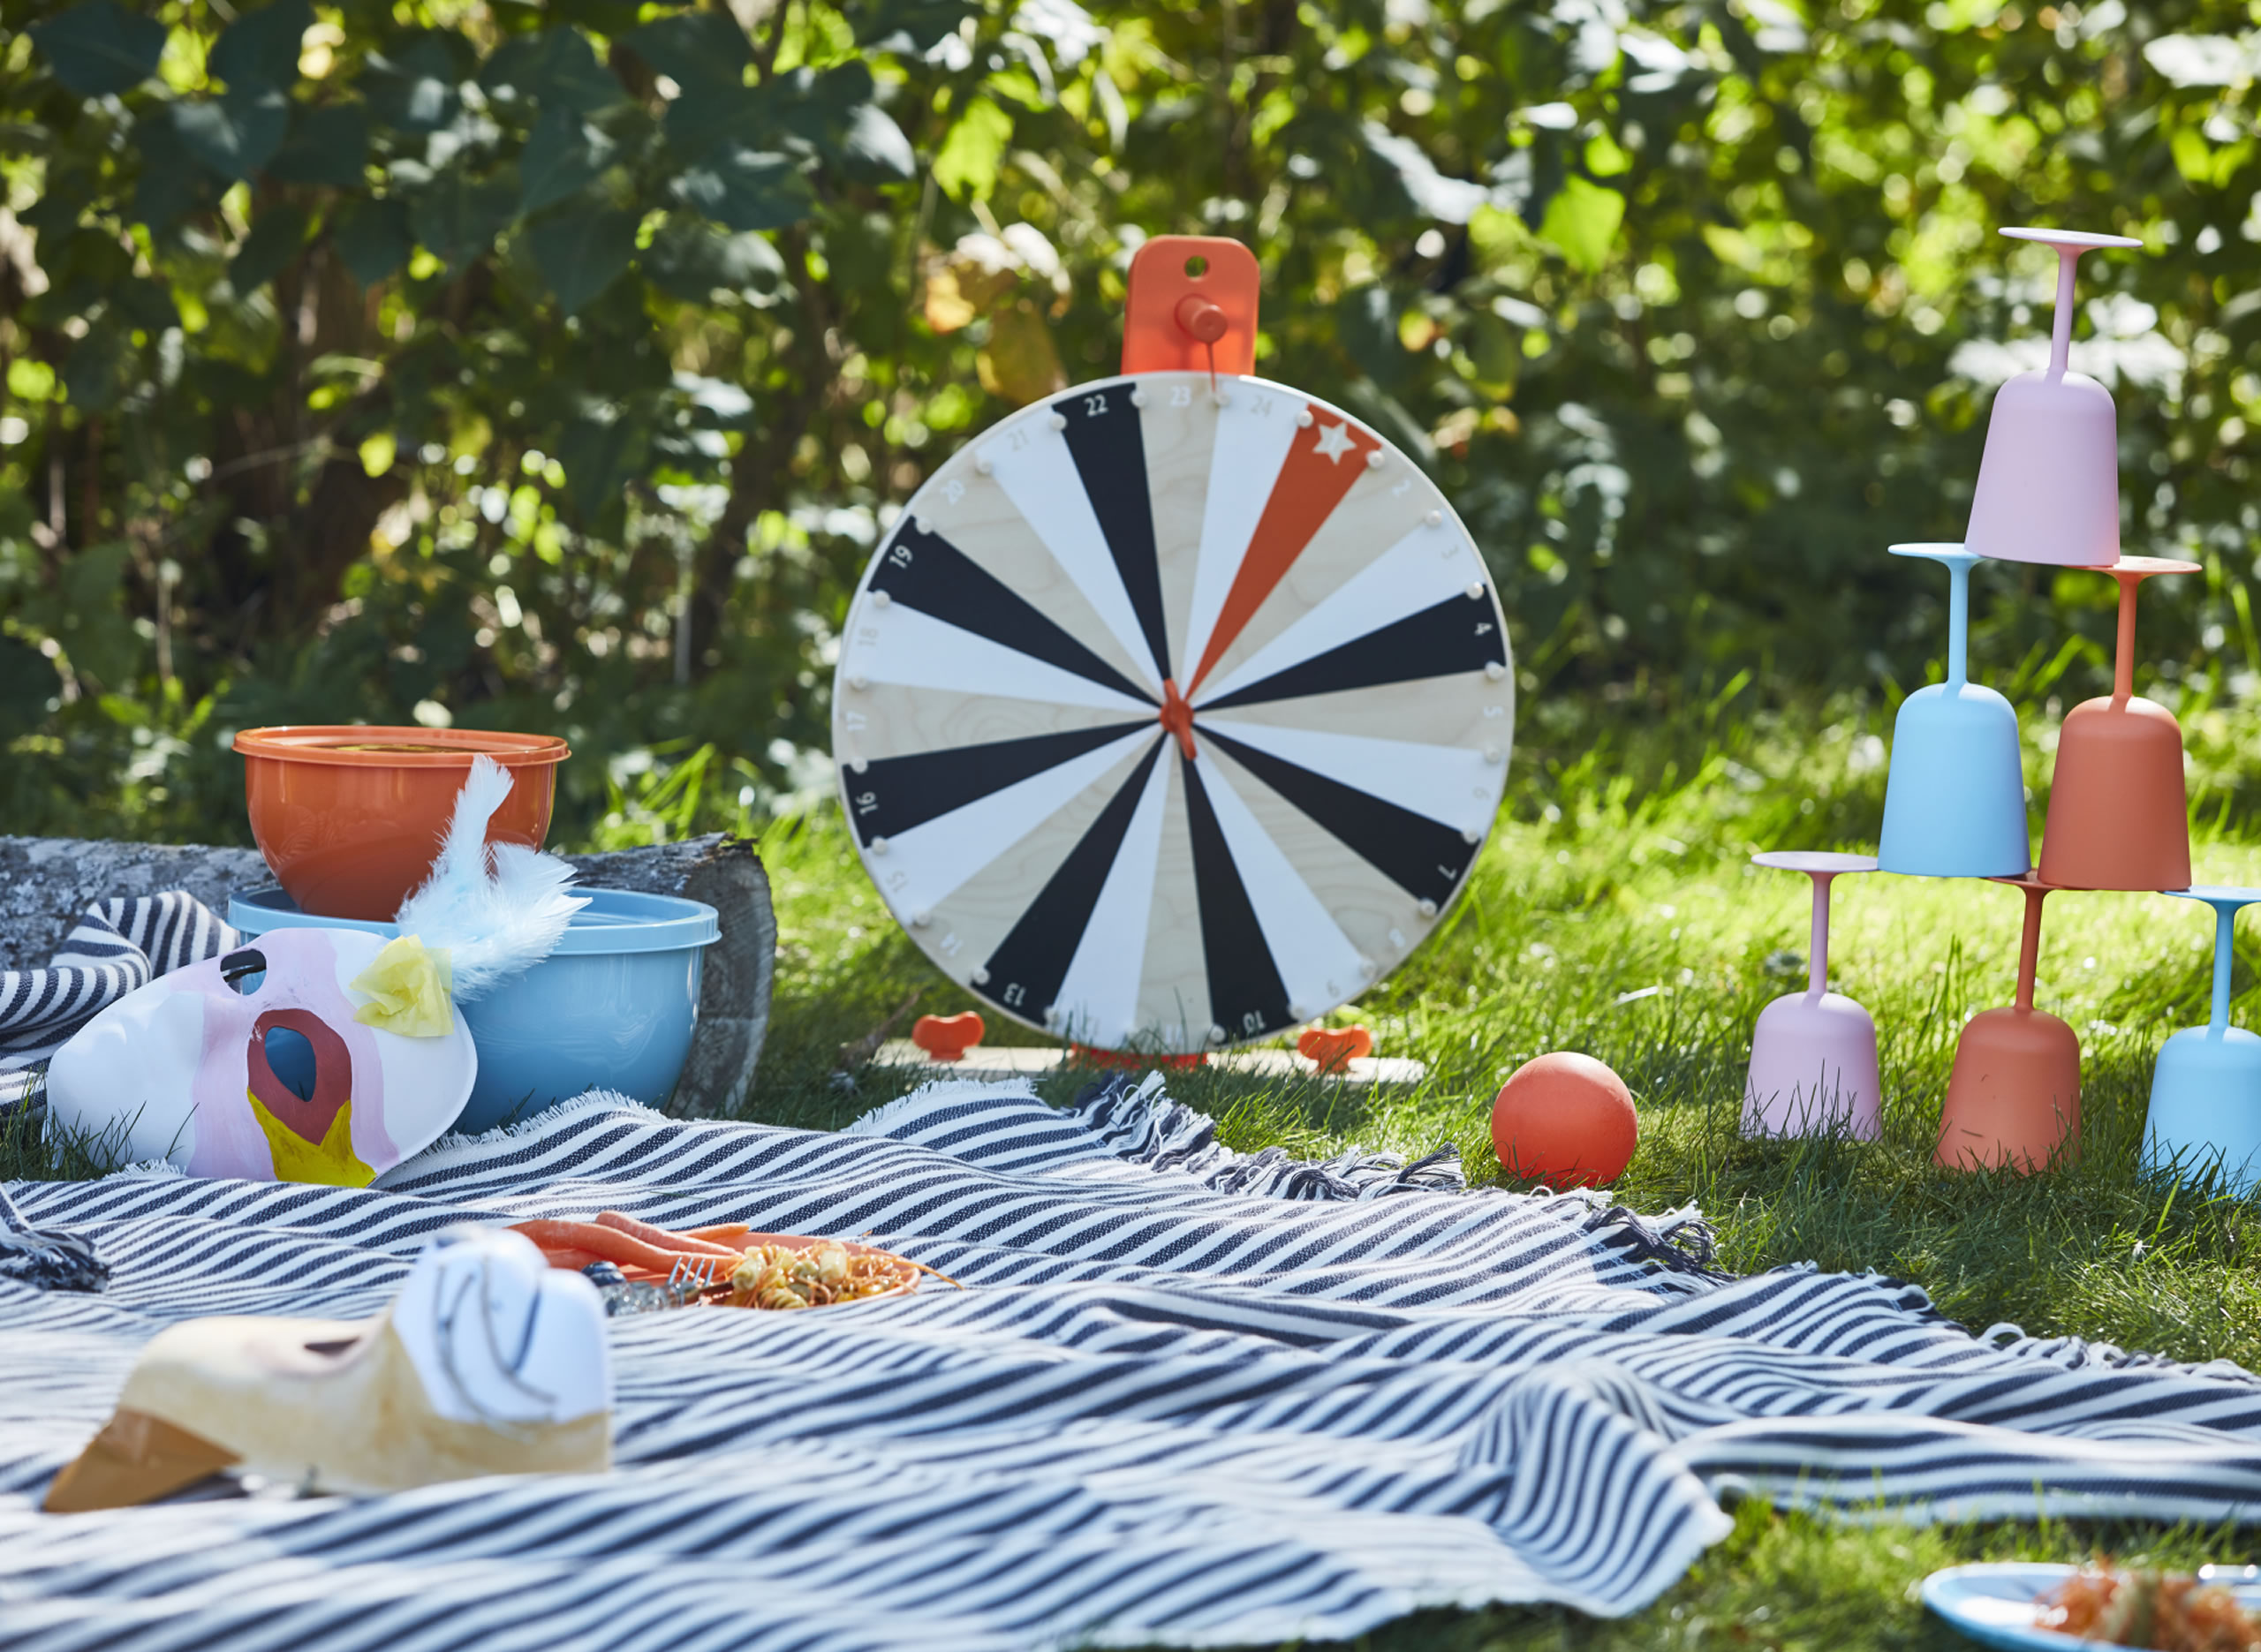 IKEA Ideas - It's spring and you can picnic again